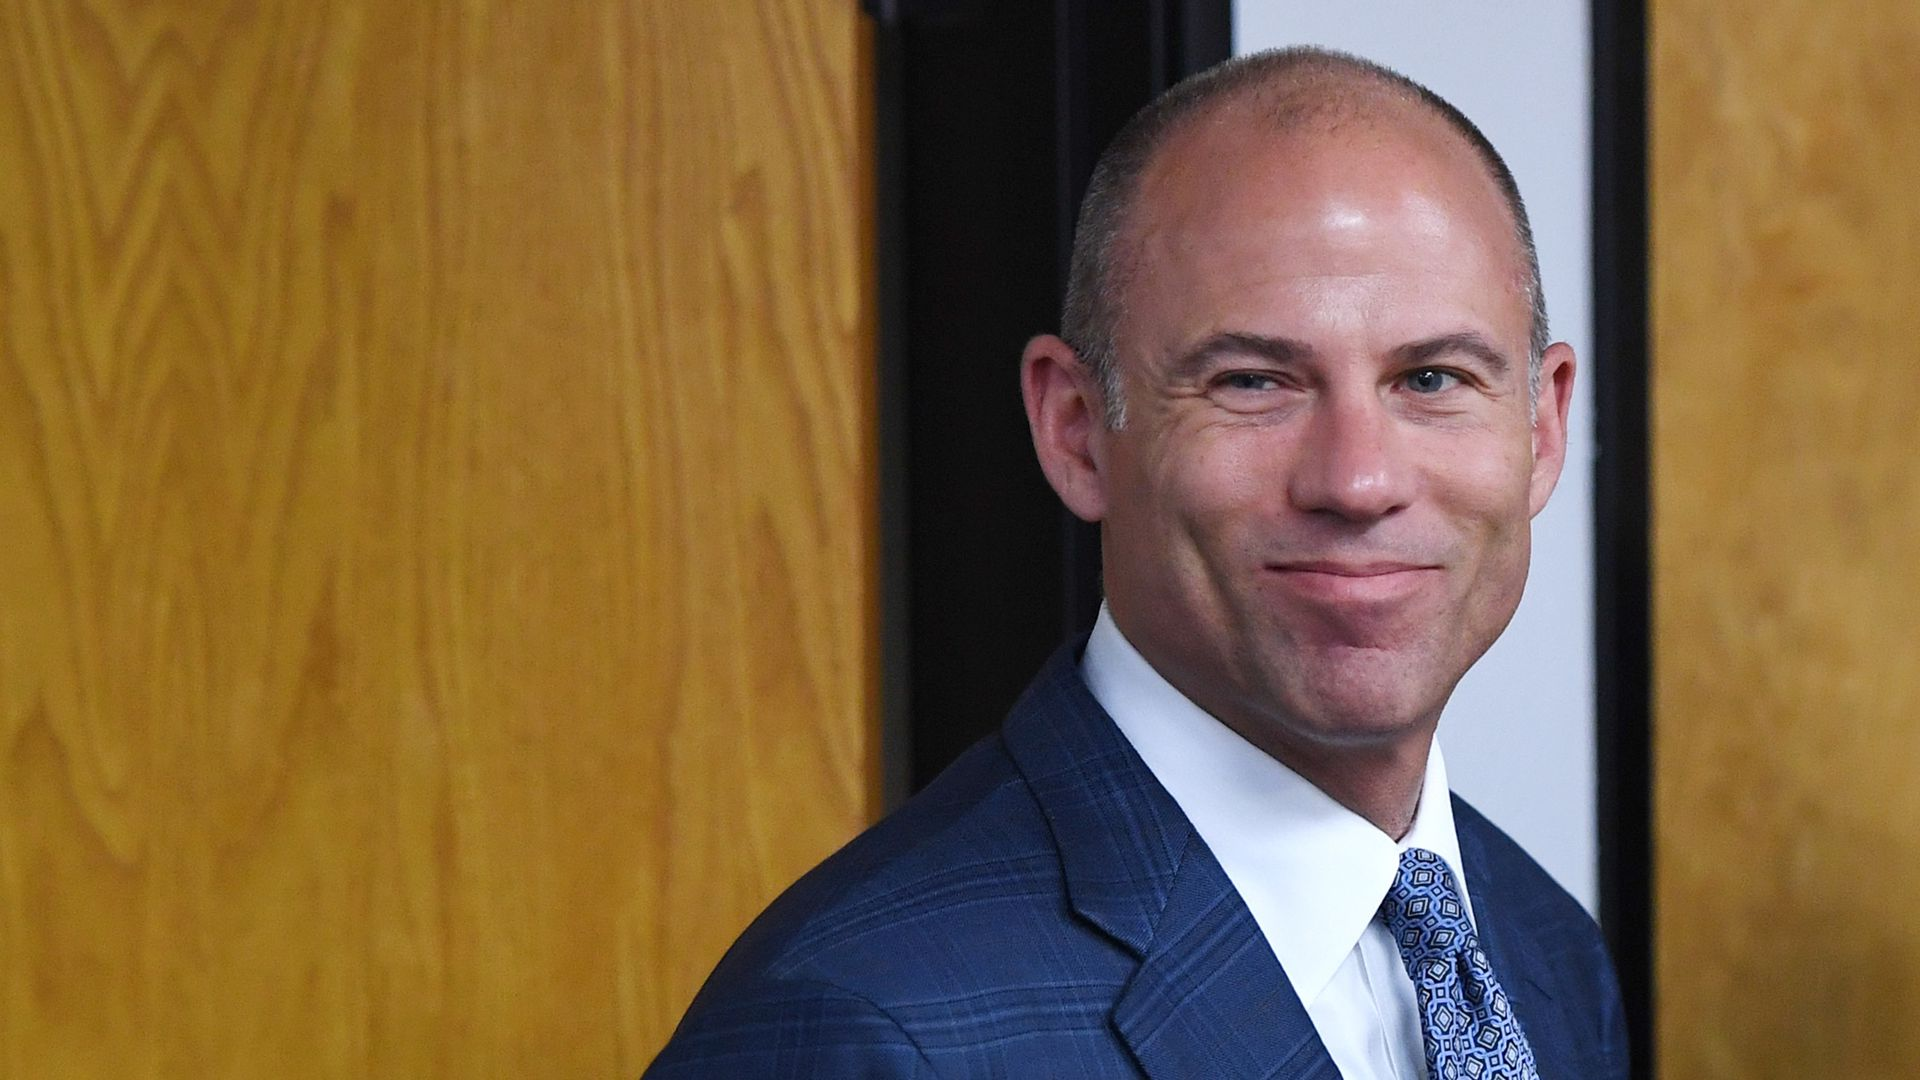 Attorney Michael Avenatti. Photo: Ethan Miller/Getty Images